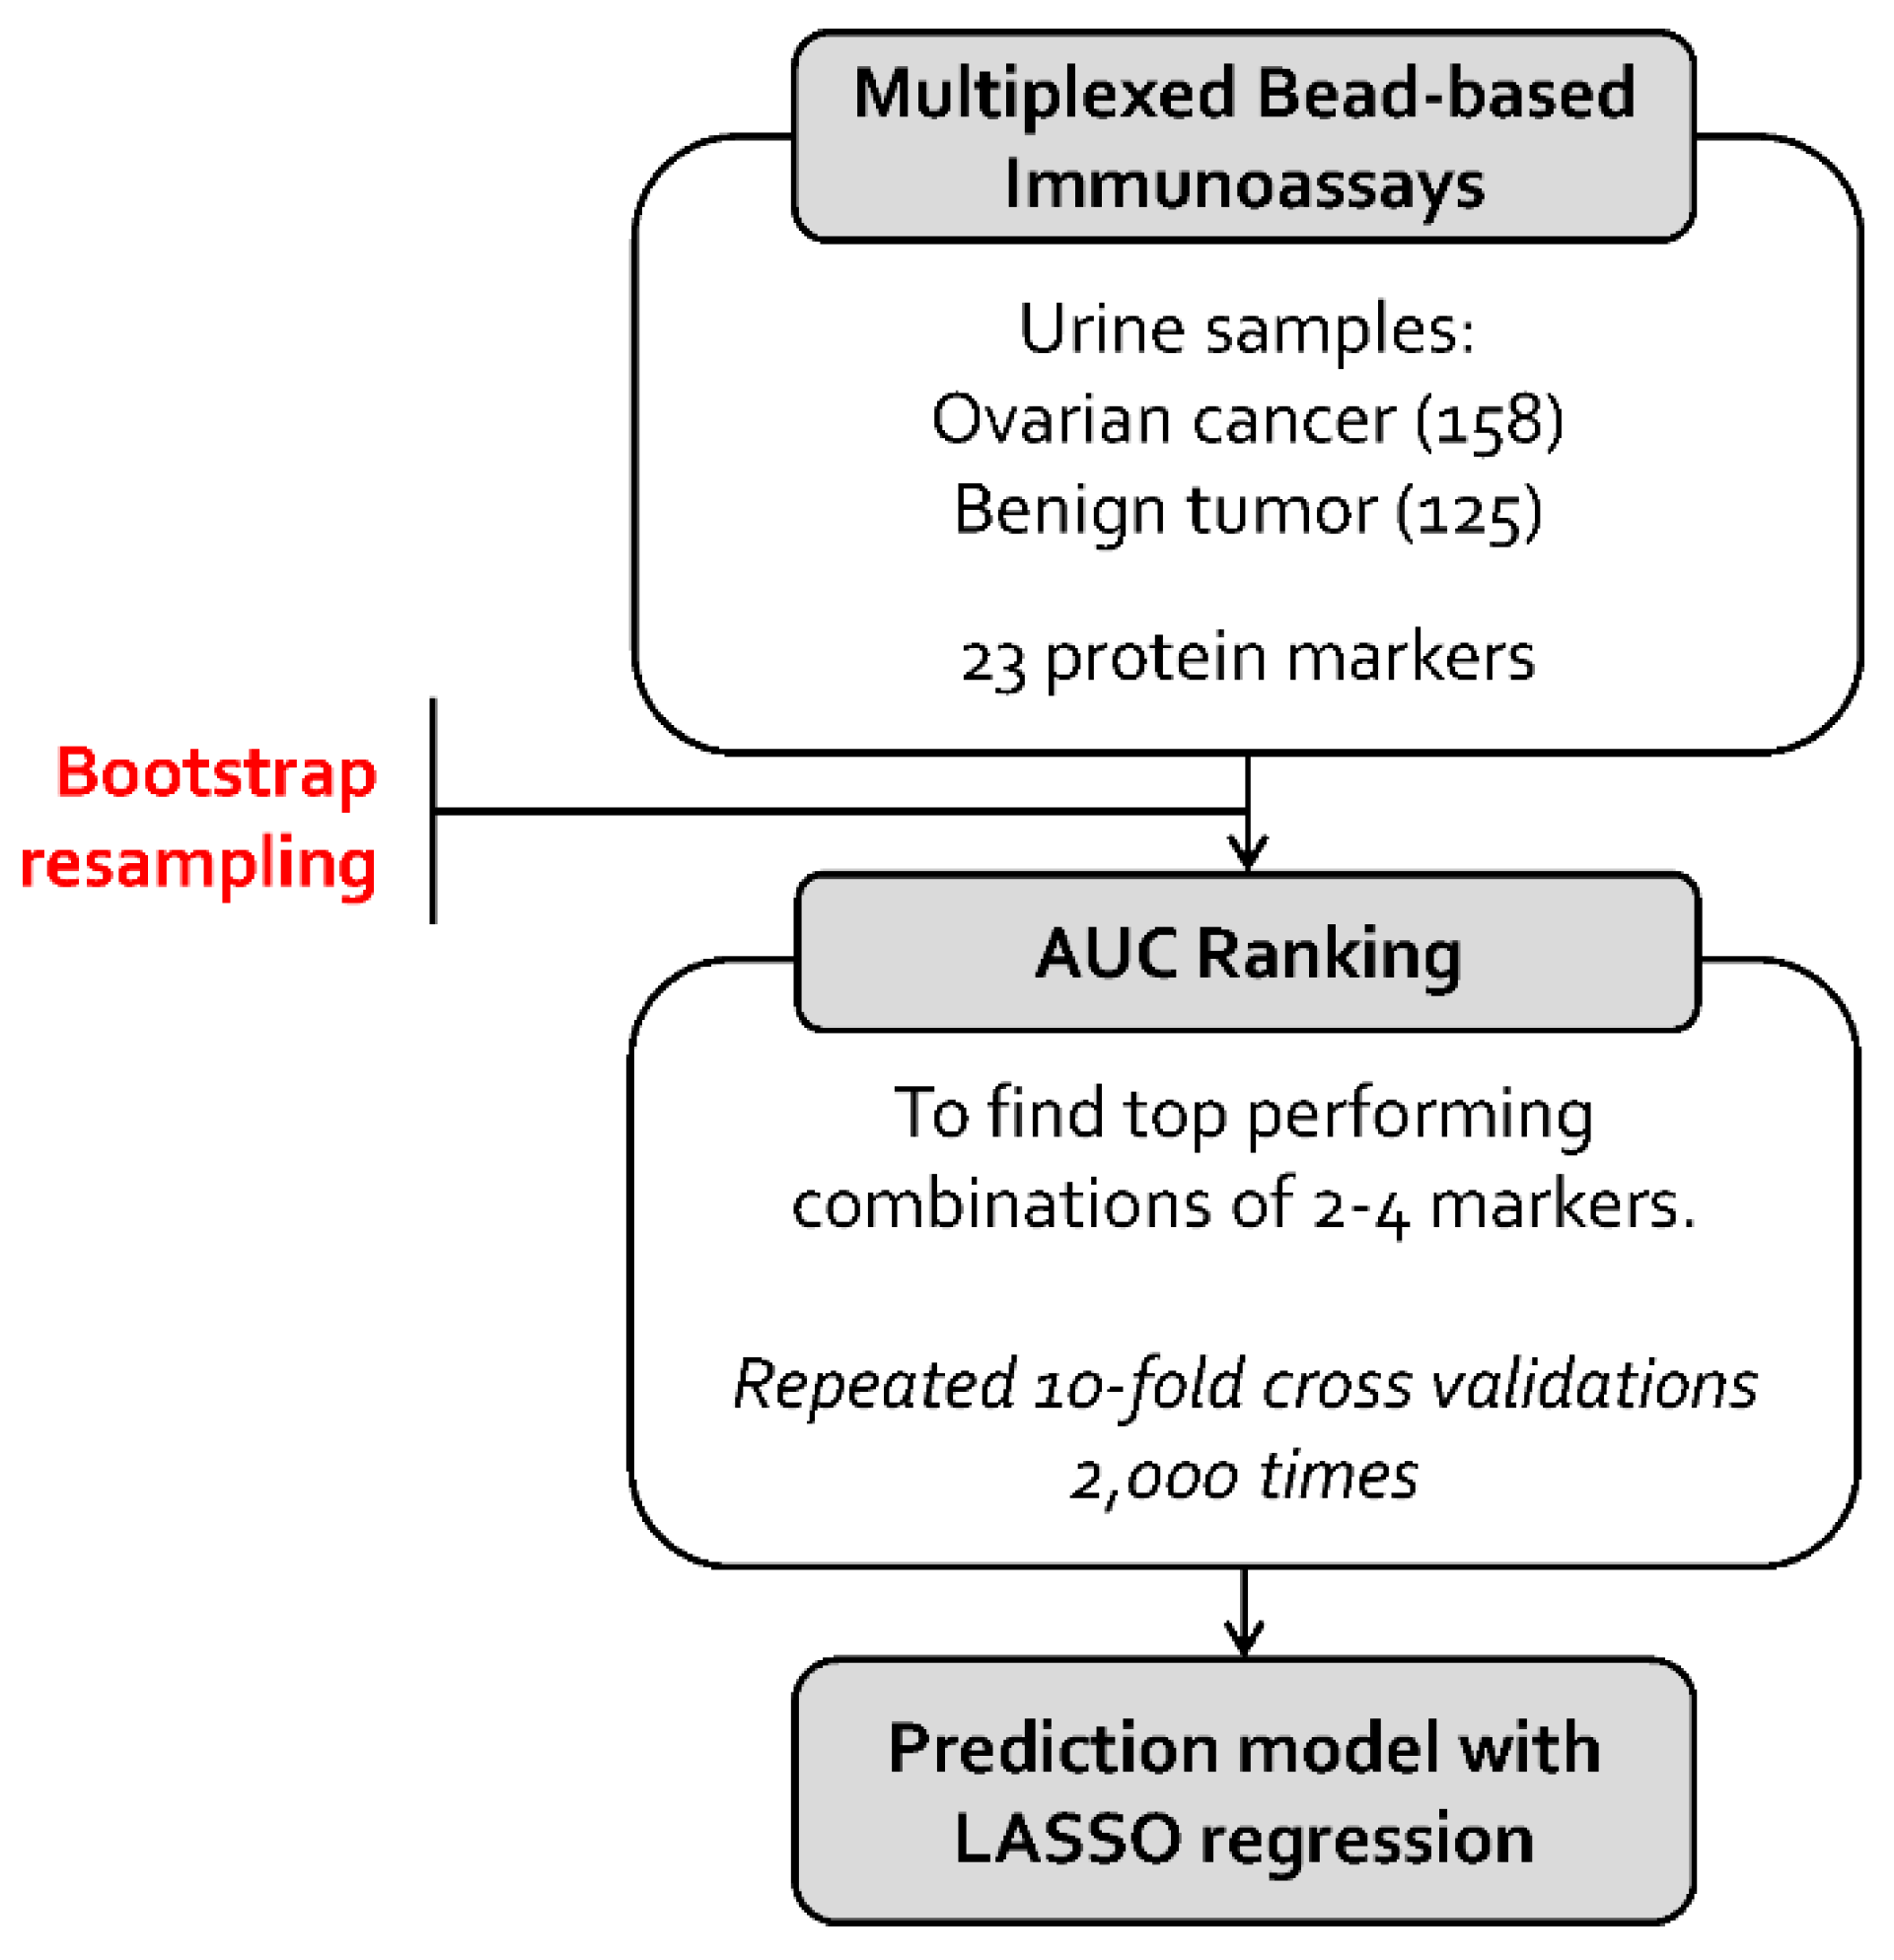 Ijms Free Full Text An Improved Prediction Model For Ovarian Cancer Using Urinary Biomarkers And A Novel Validation Strategy Html